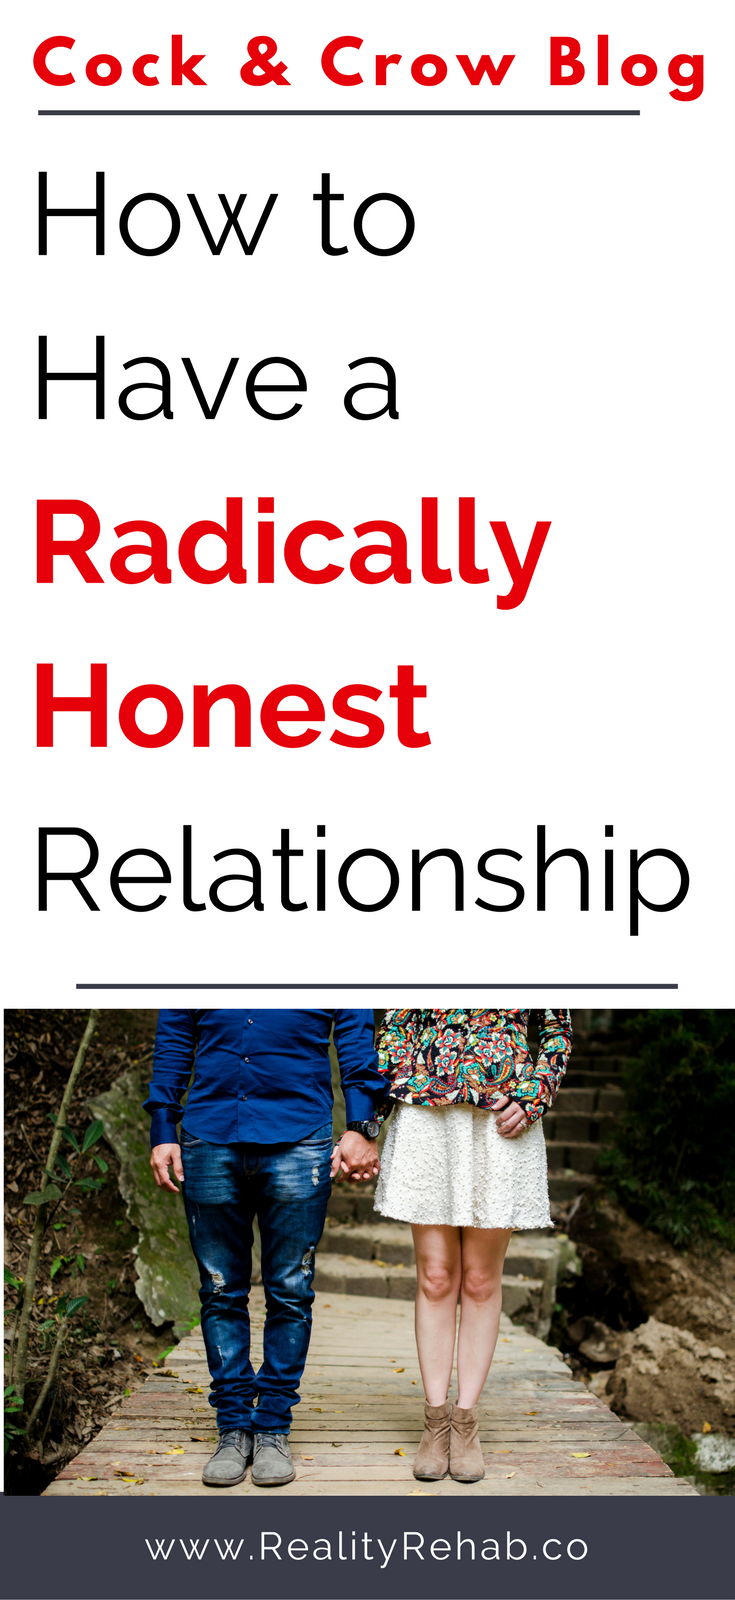 How to Have a Radically Honest Relationship | Cock & Crow Blog #intimacy #sex #relationships #polyamory